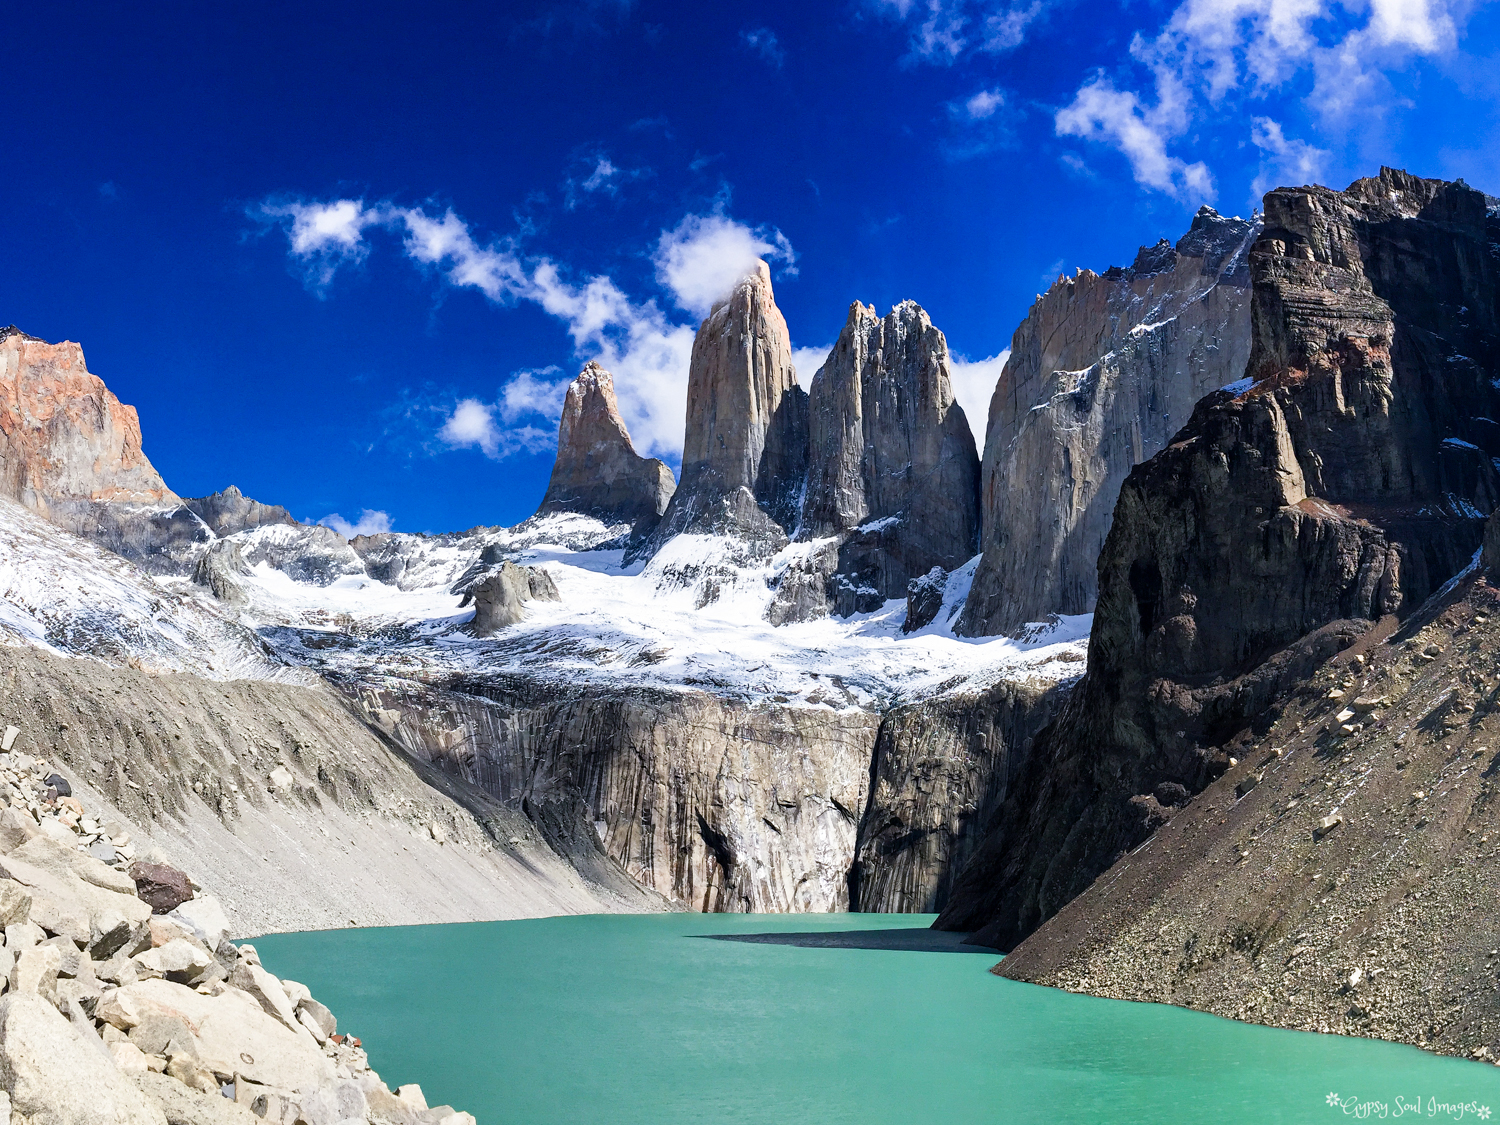 The Towers of Torres del Paine, Chile Purchase this image in a variety of products from   Red Bubble  .